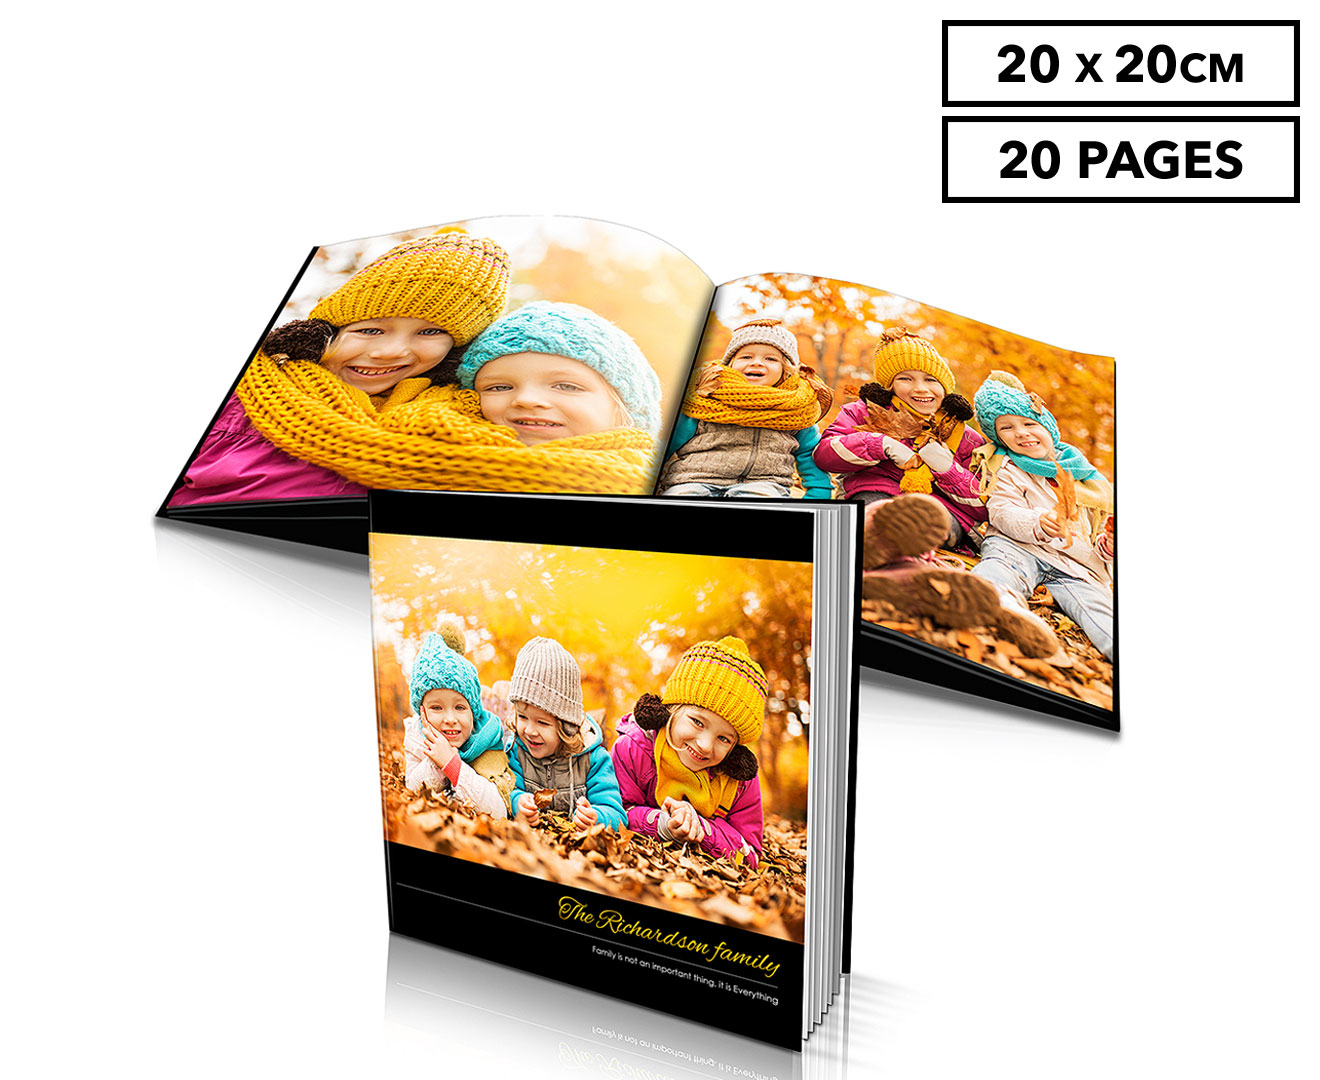 Personalised 20 x 20cm Soft Cover Photo Book - 20 Pages | Catch.com.au